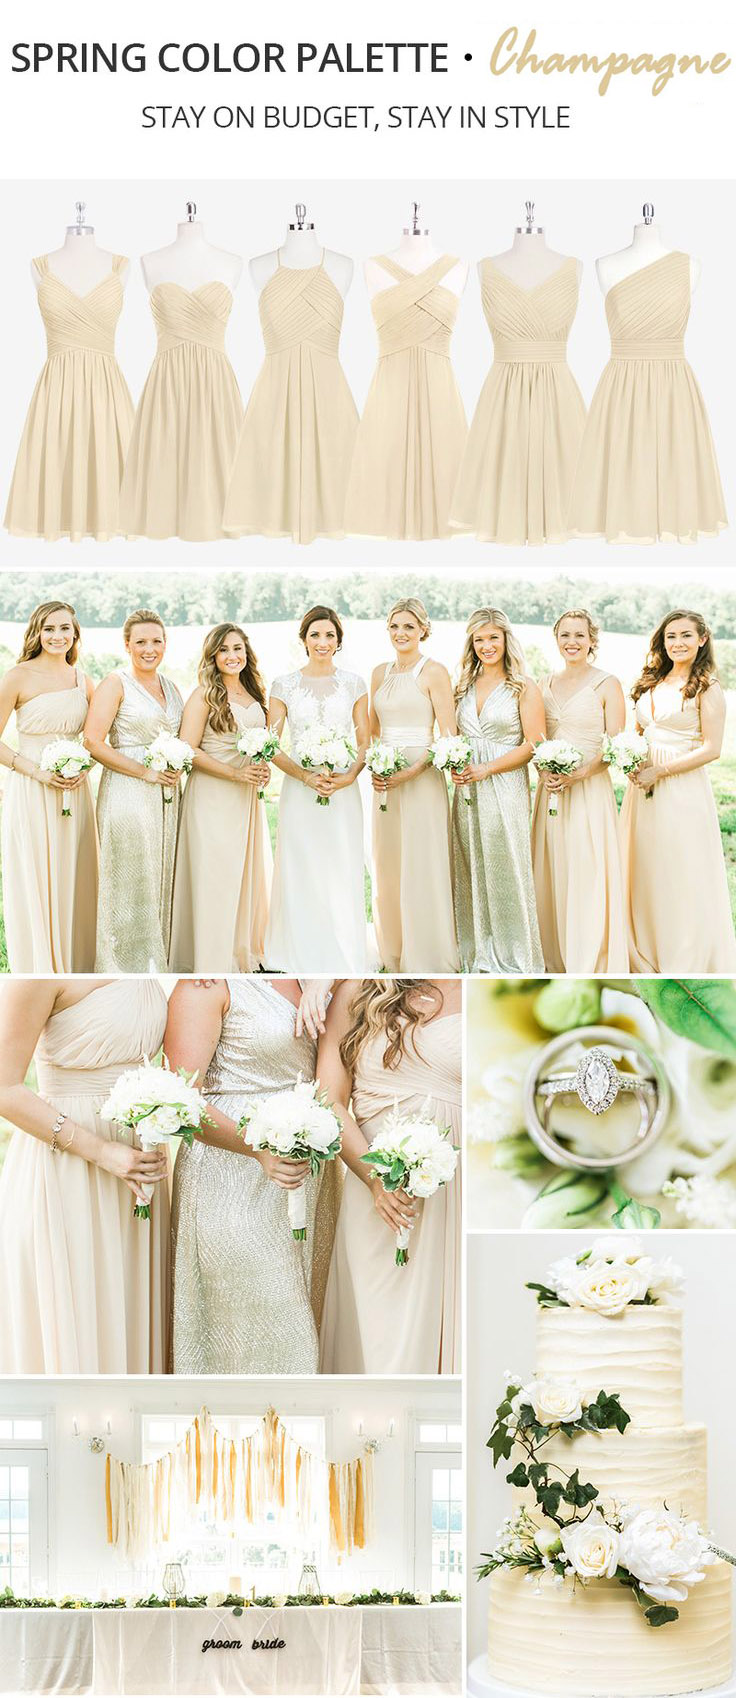 Trending Spring Color Palette for Your Bridesmaid Dresses-champagne